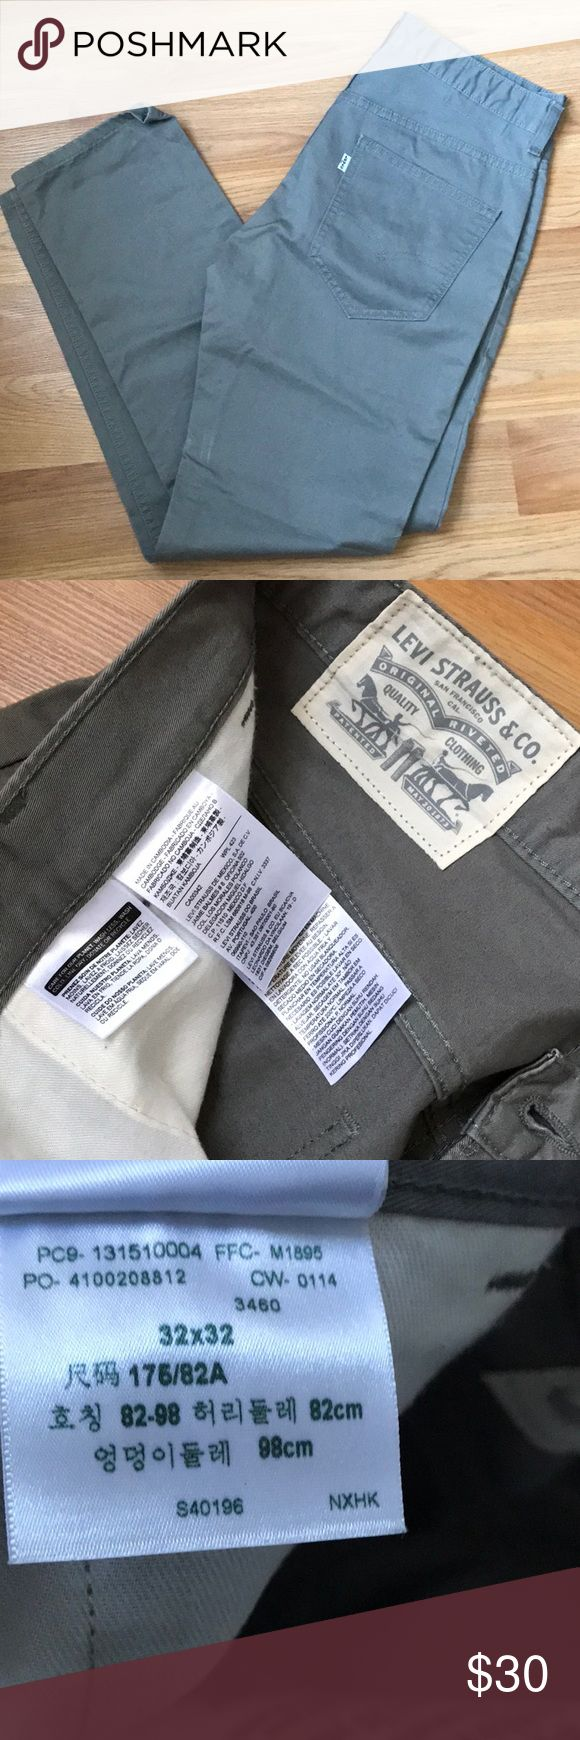 Levi's Men's Khakis size 32 x 32 These are brand-new, unused condition light green/gray Levi's khaki pants, size 32 x 32. Smoke free, pet free home. Feel free to make an offer or ask questions! Levi's Jeans